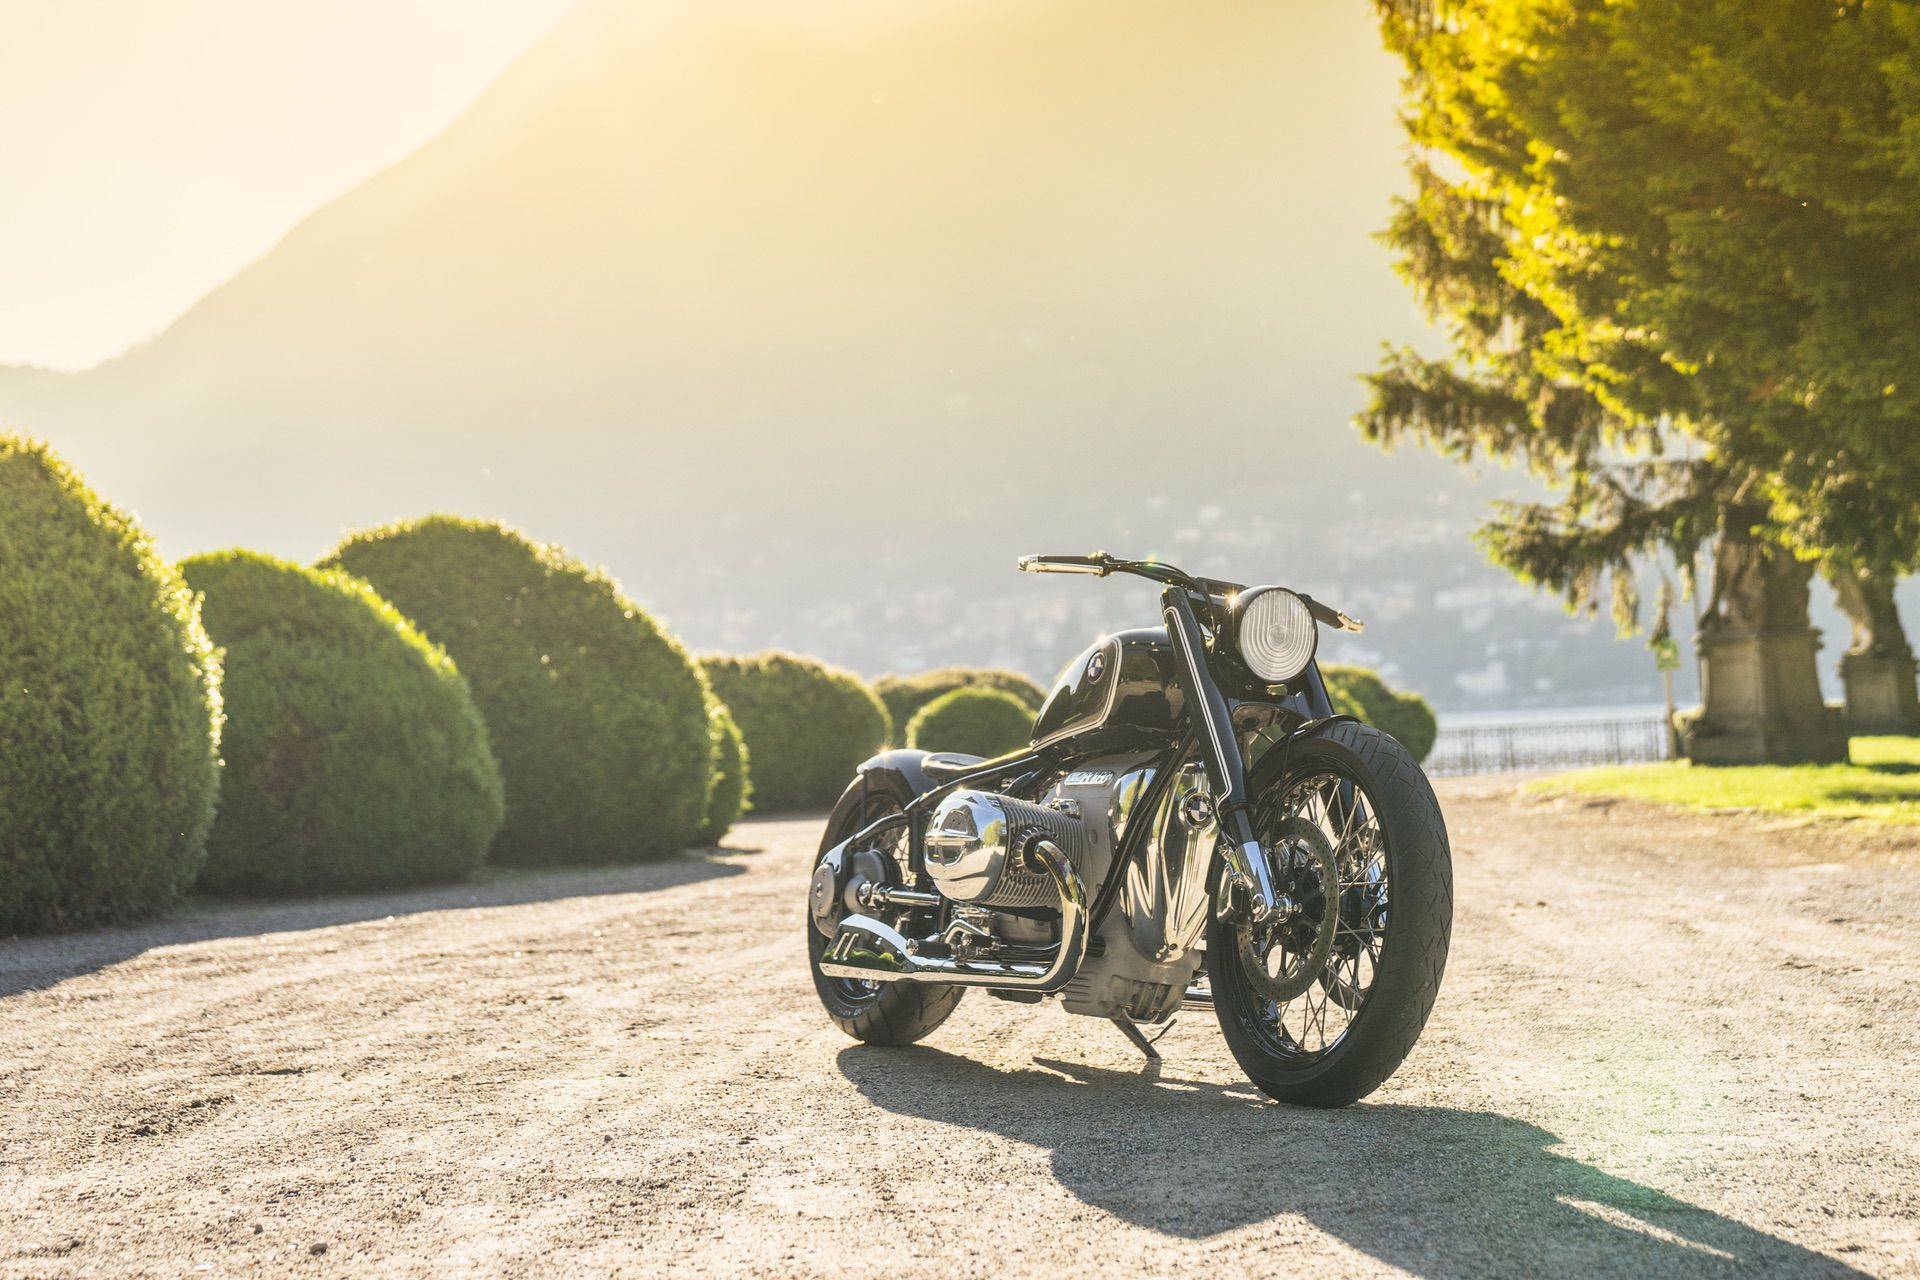 BMW Motorrad Concept R18 will make its world debut at 2019 Concorso d'Eleganza Villa d'Este